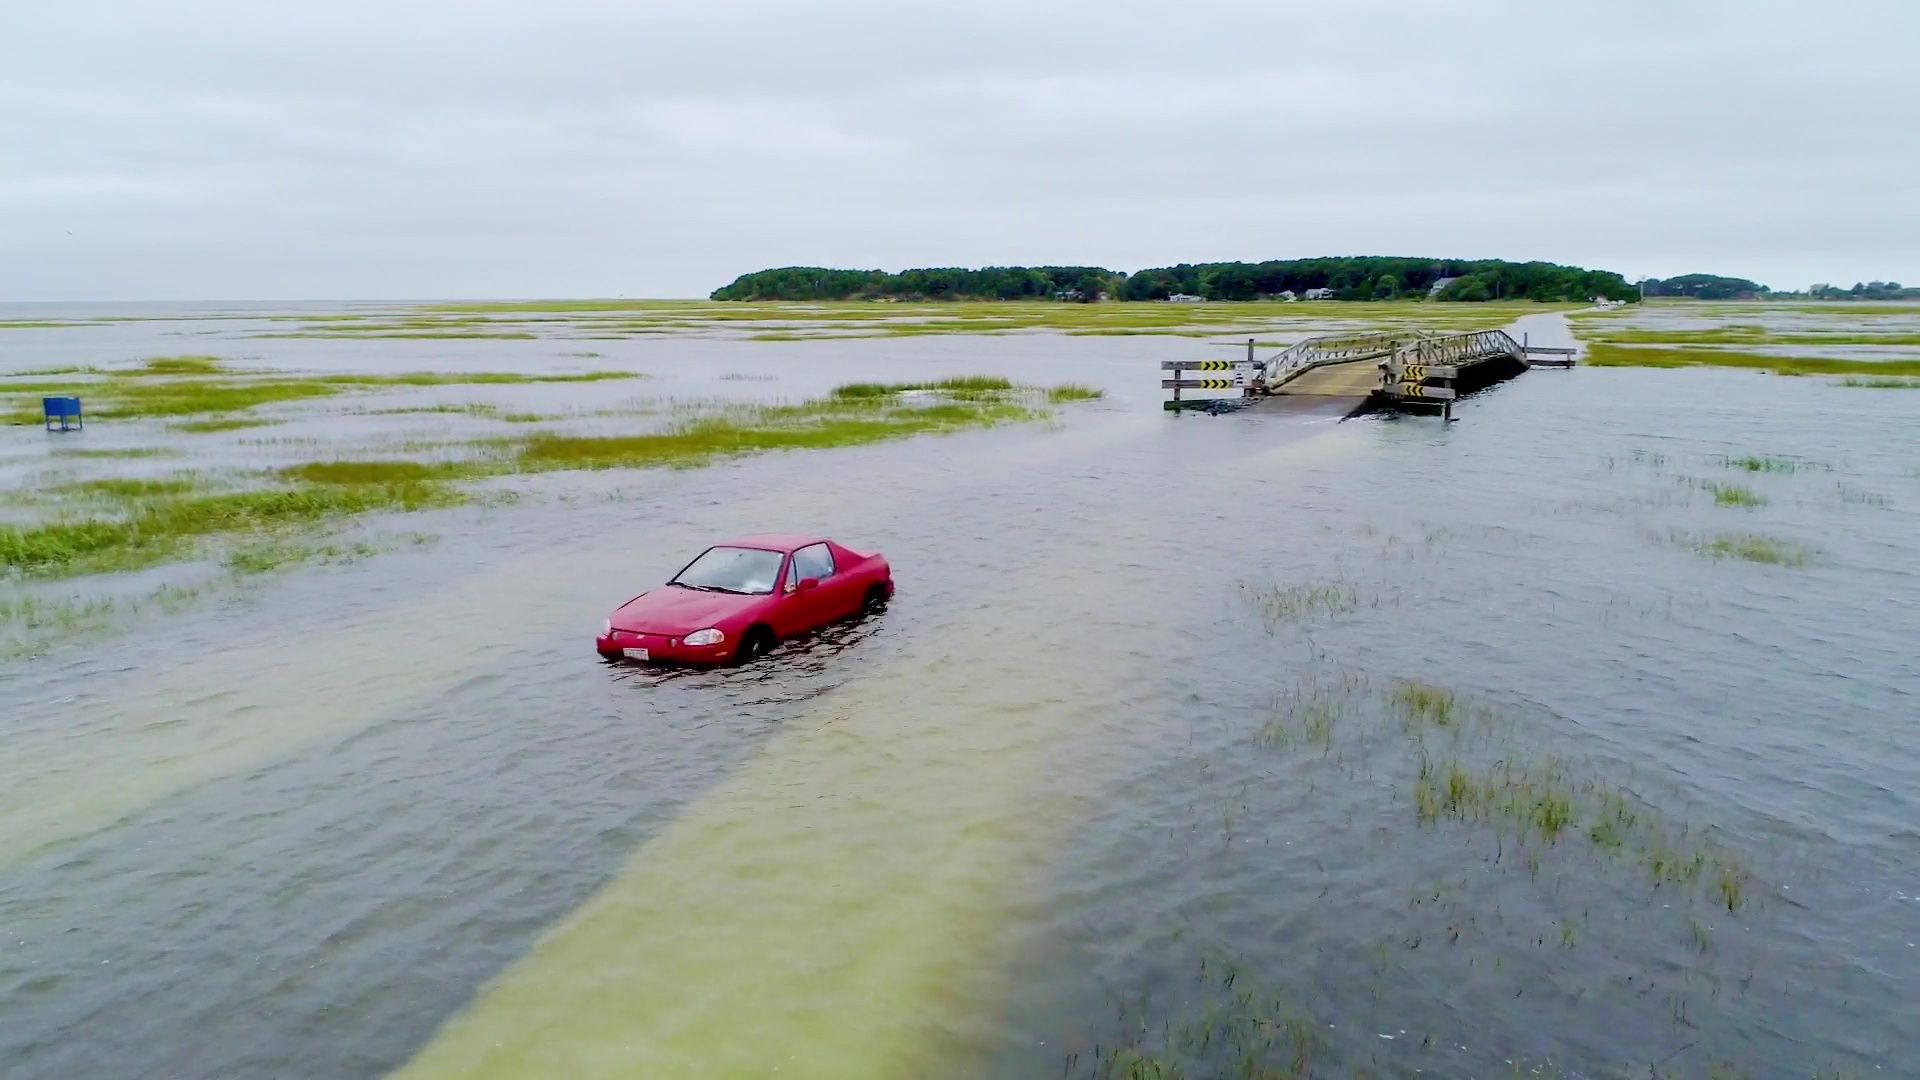 Rescues made after vehicle swallowed by high tide on Cape Cod